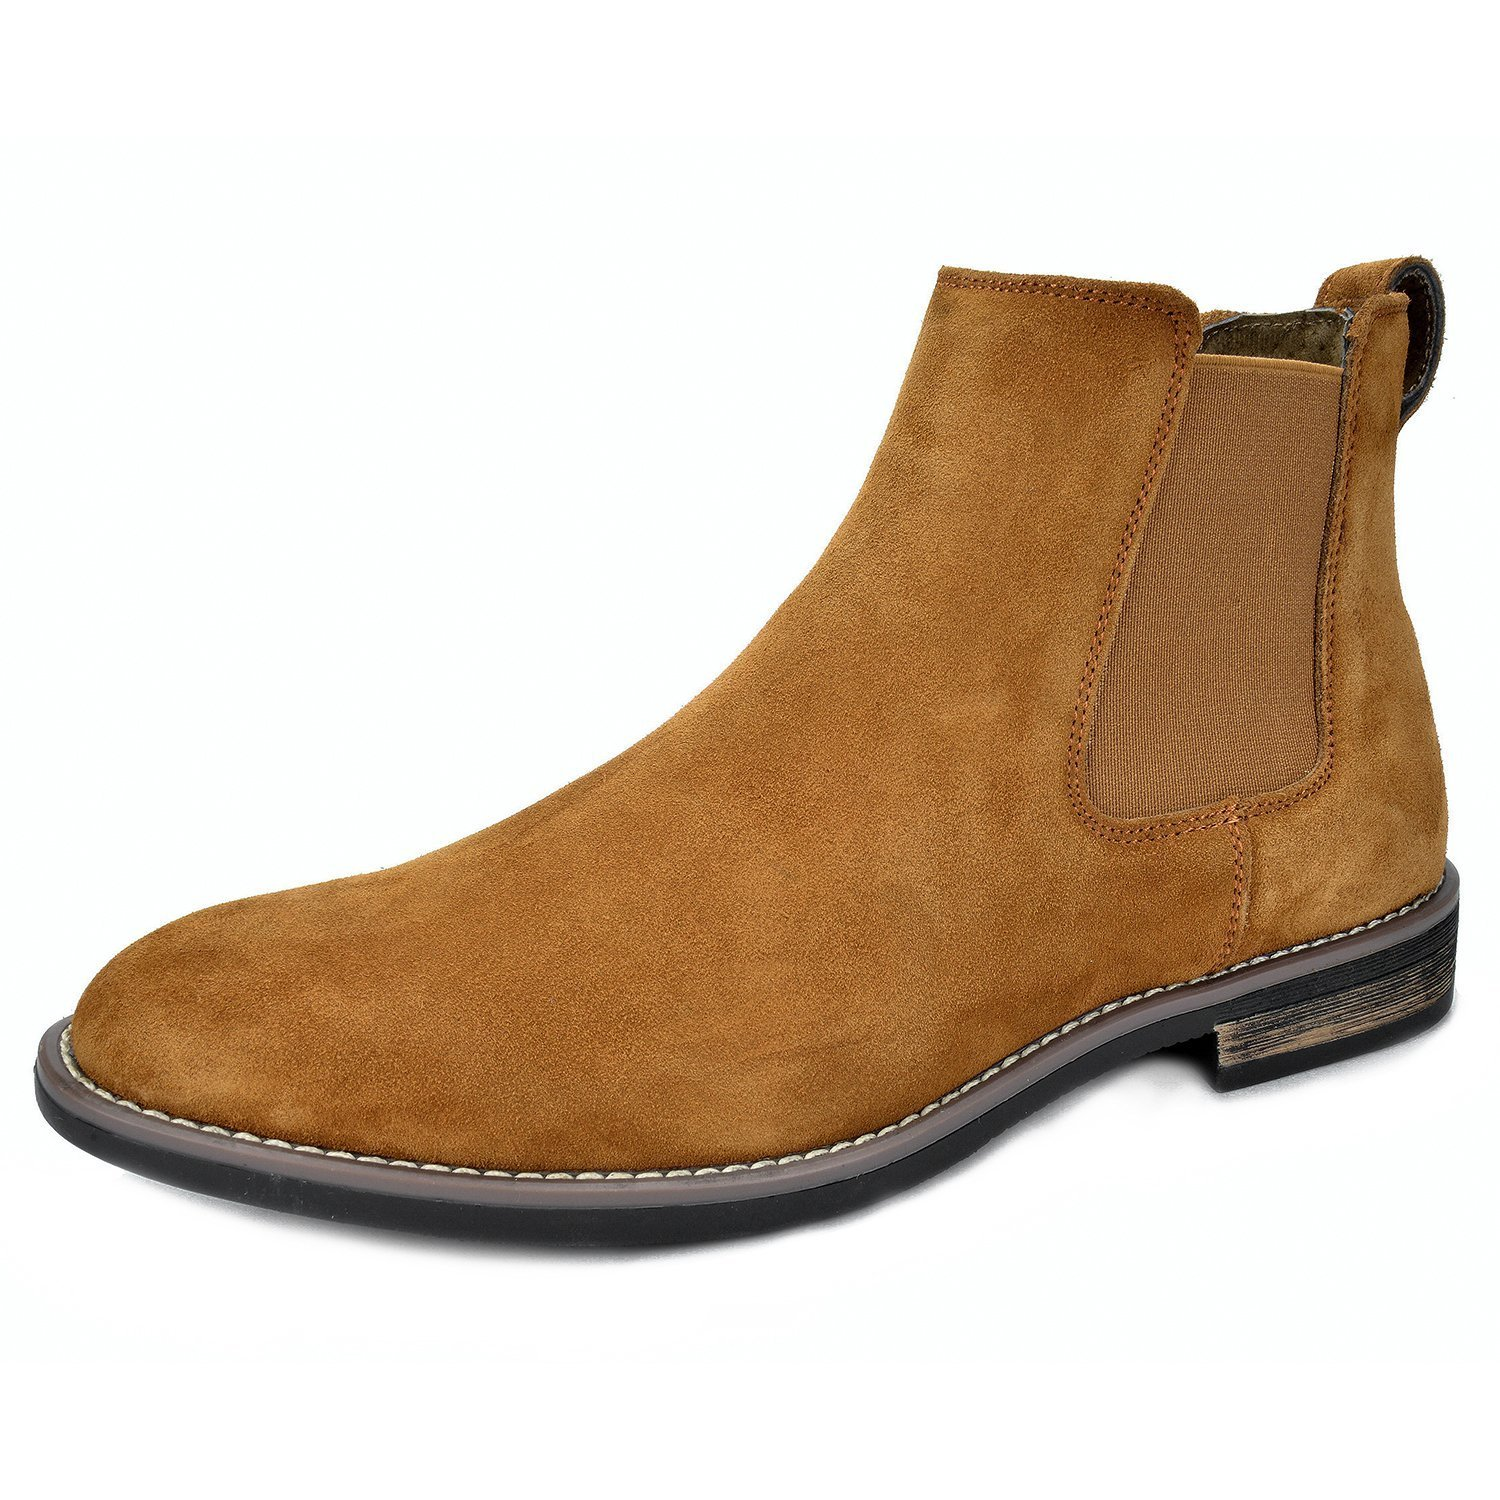 7dcb75a9d7139 BRUNO MARC NEW YORK Men's Urban-06 Suede Leather Chukka Ankle Boots ...